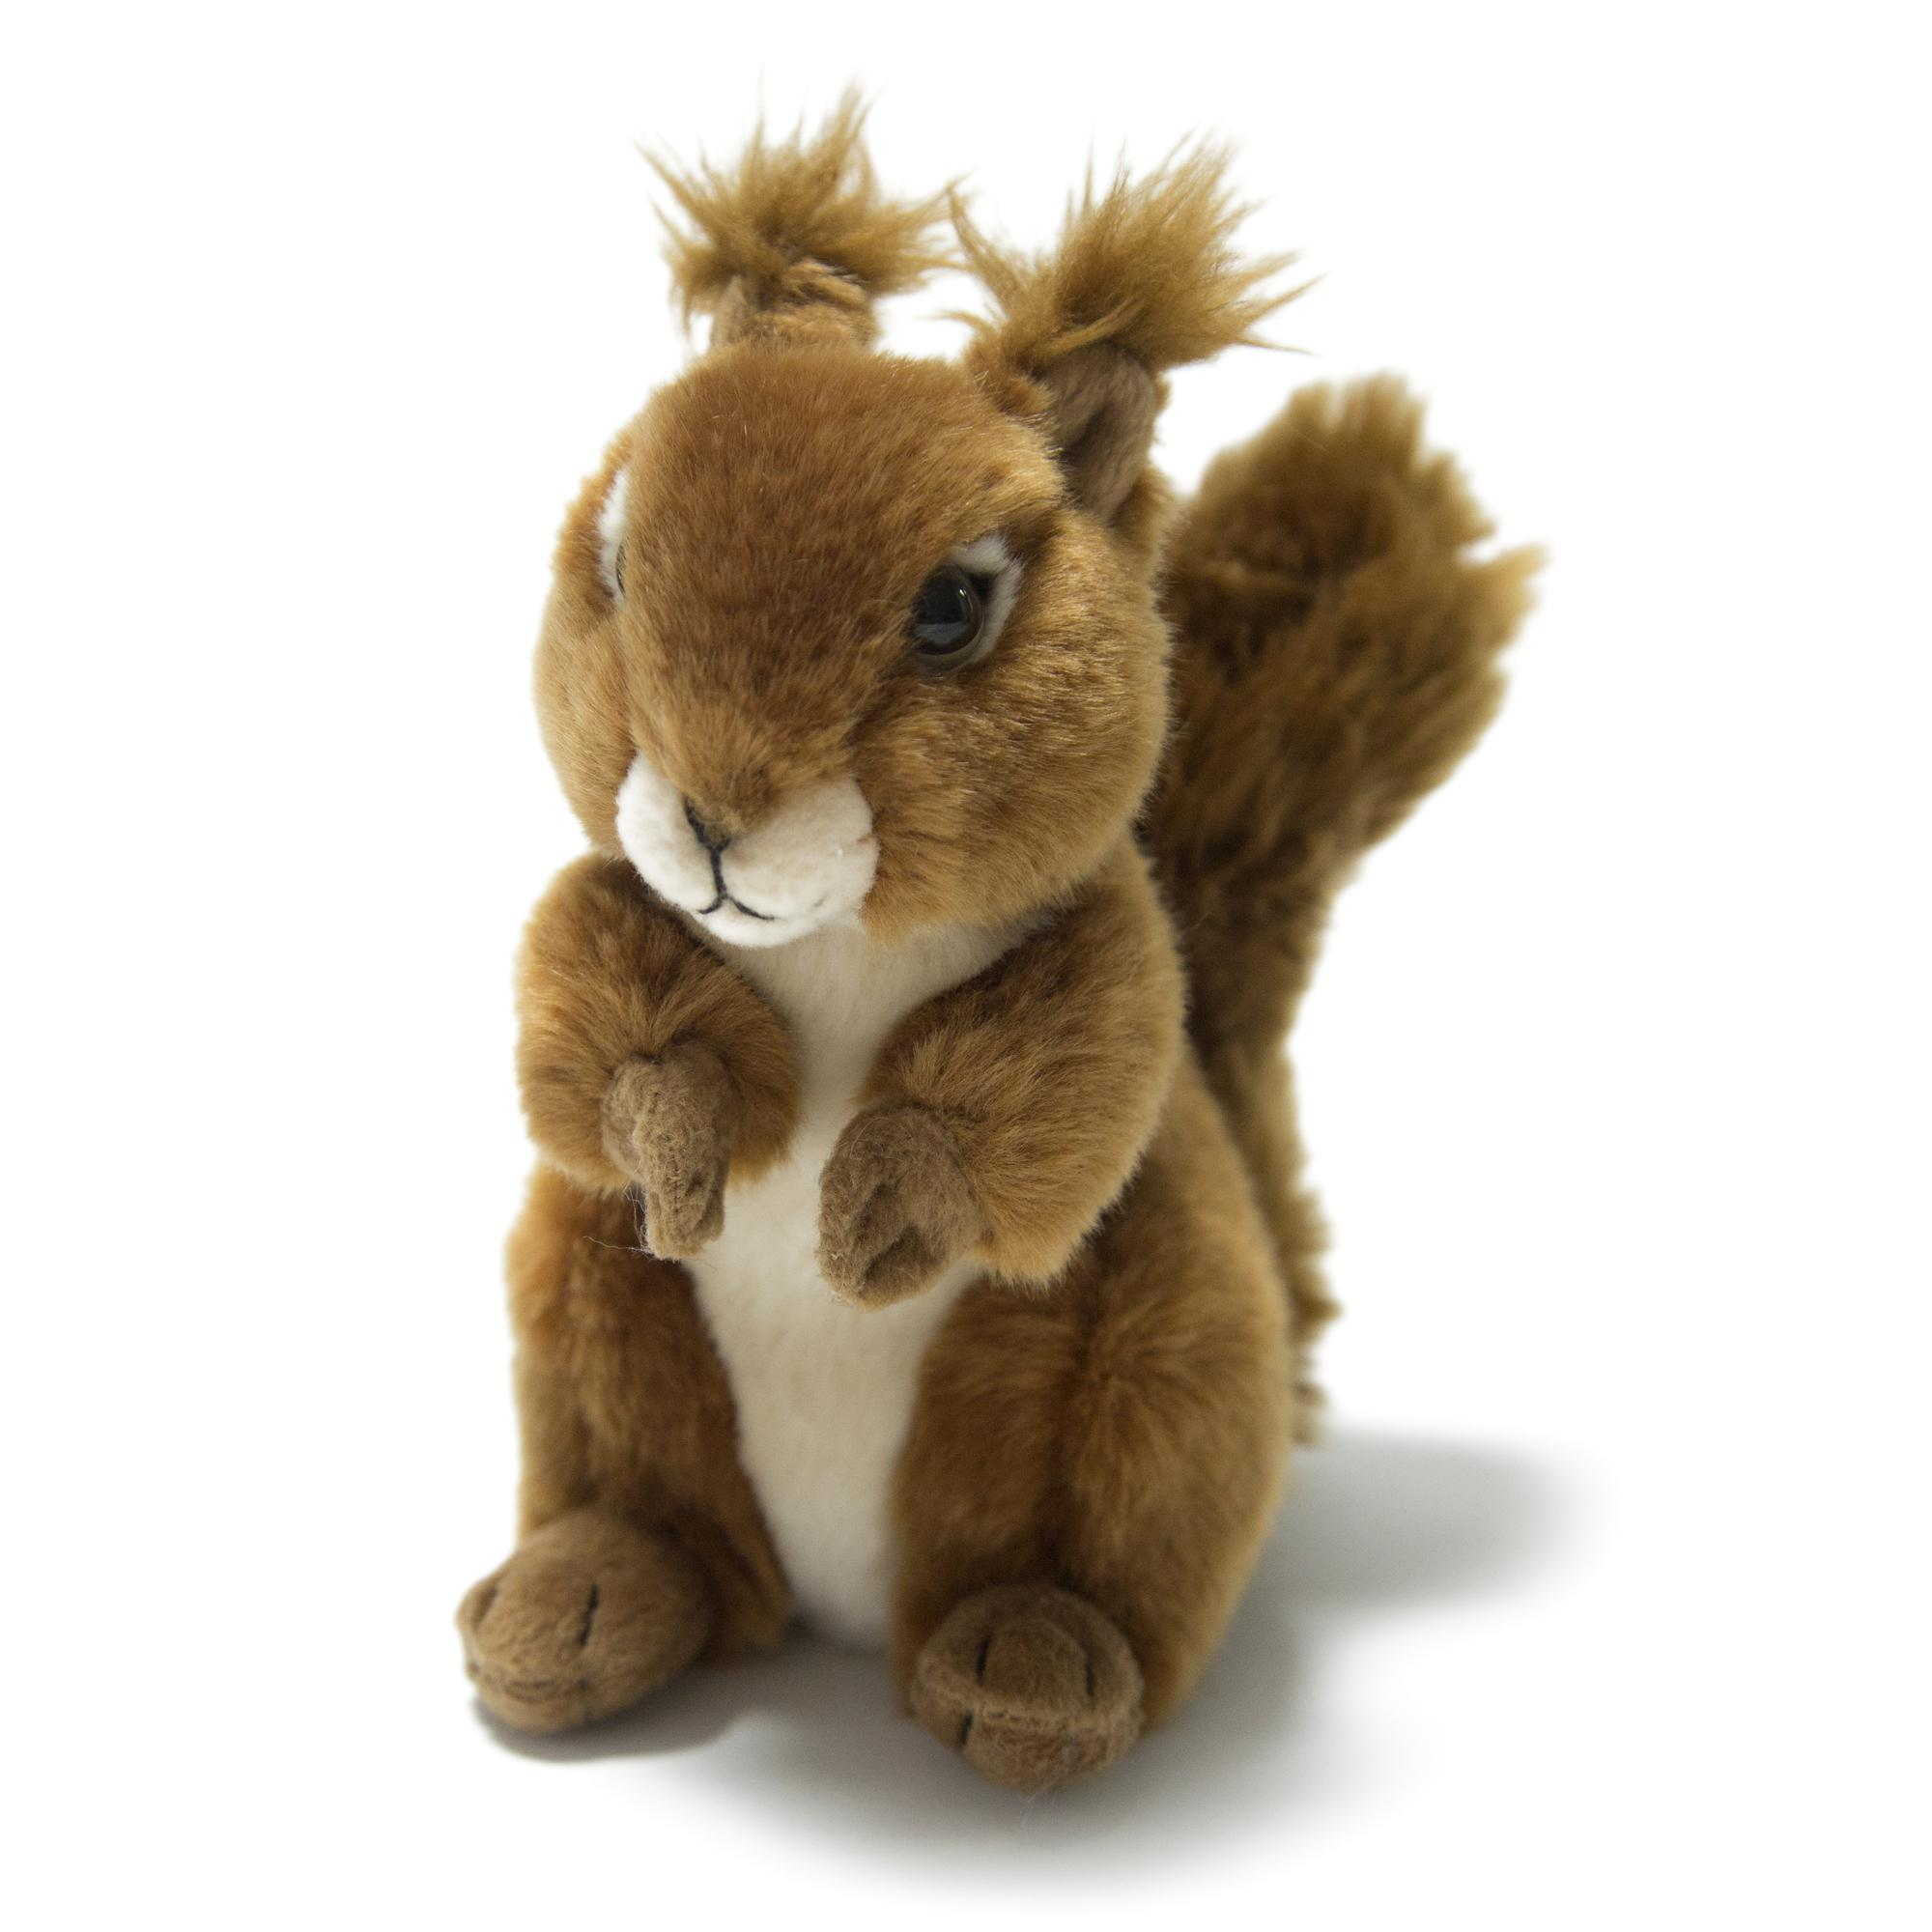 Hamleys Squirrel Soft Toy - £15.00 - Hamleys for Toys and Games